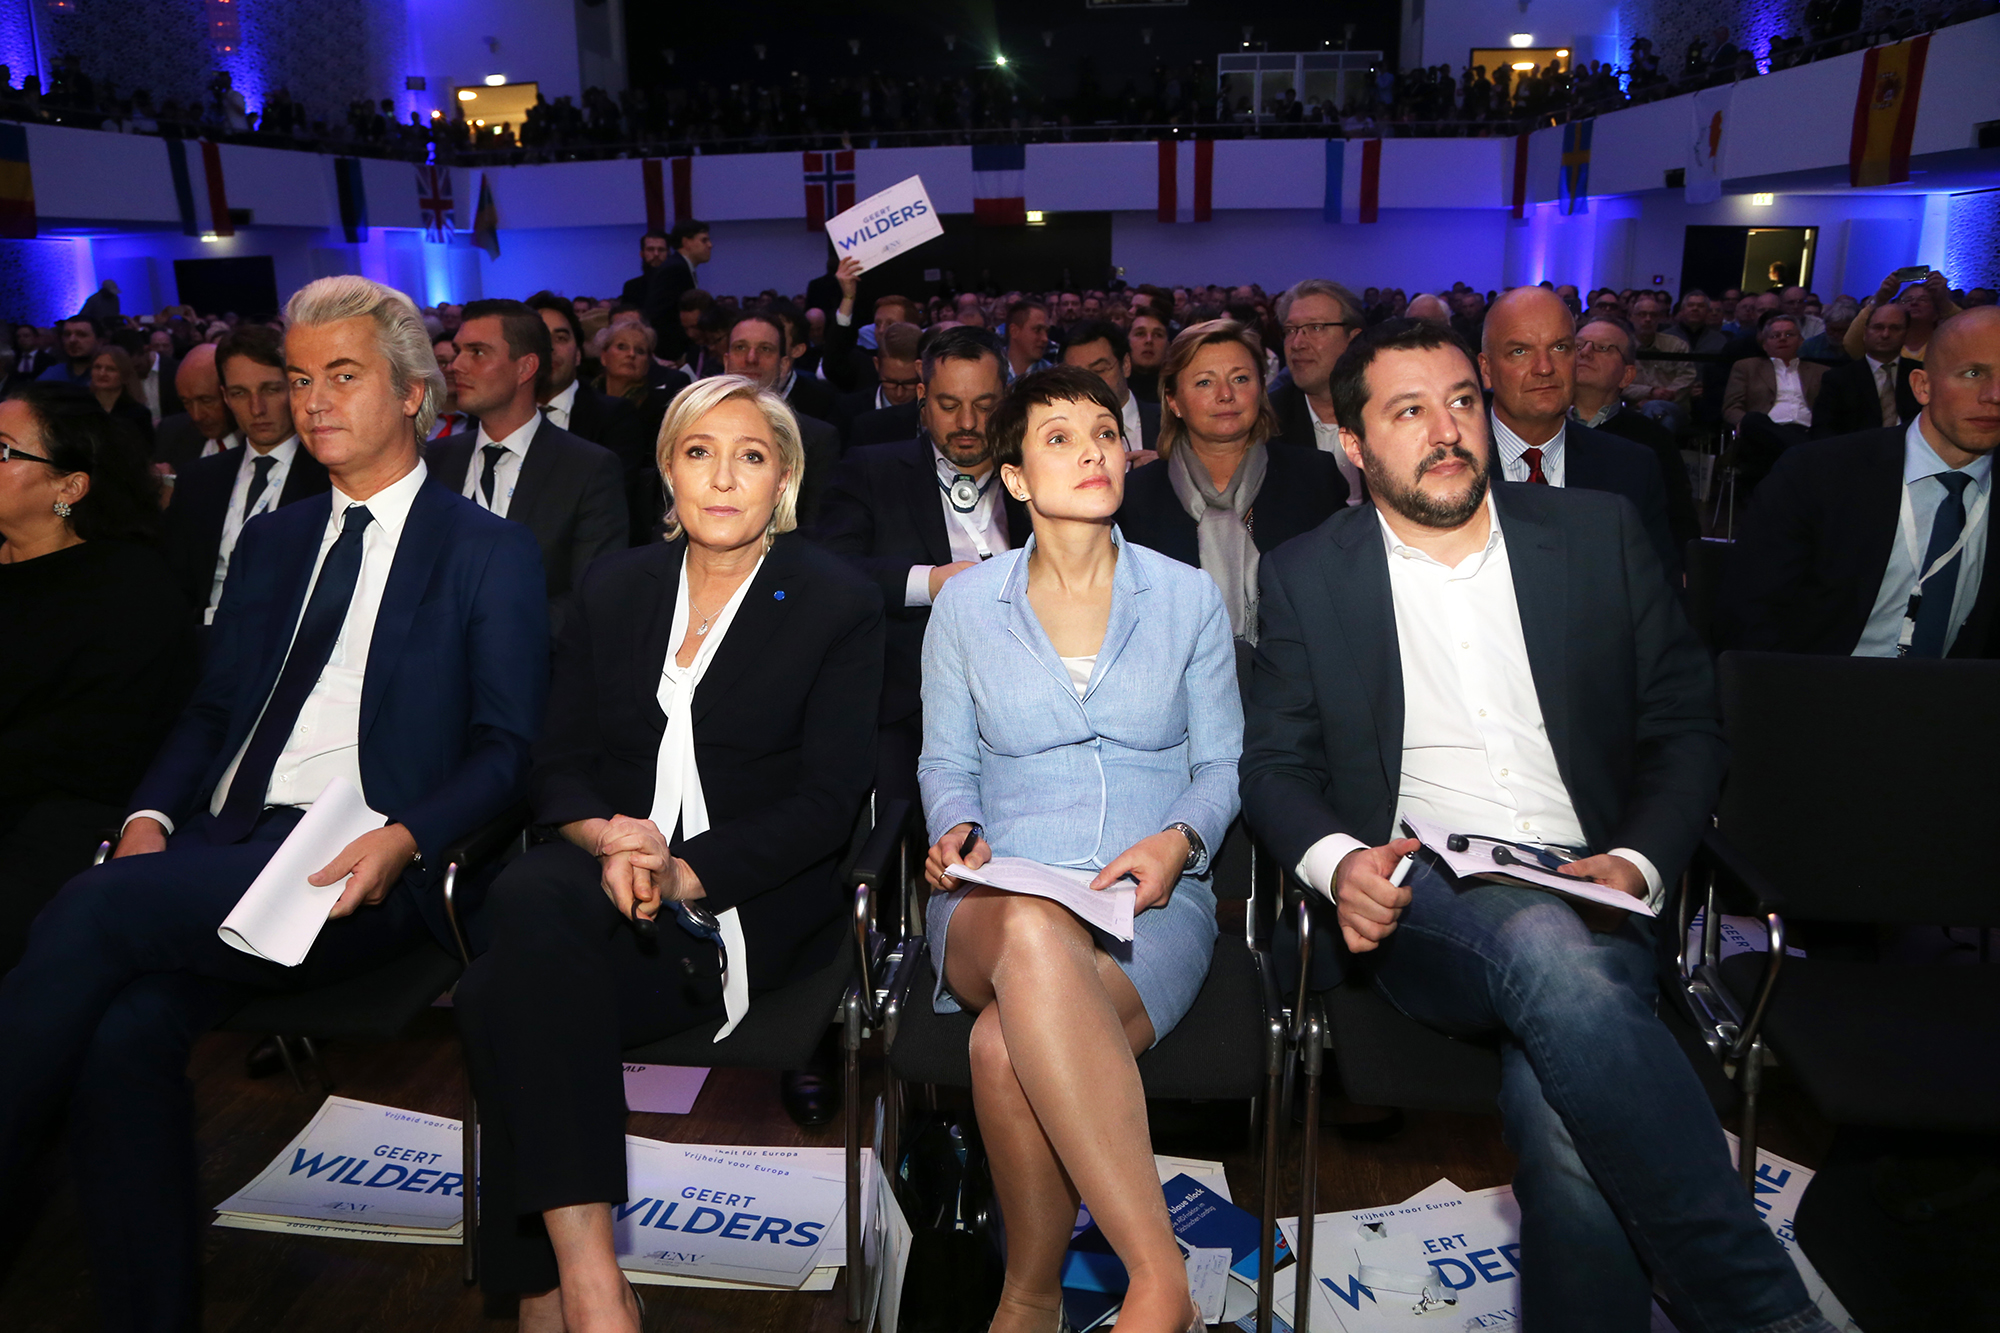 From left: Geert Wilders, Marine Le Pen, Frauke Petry, and Matteo Salvini in Koblenz, Germany, on Jan. 21, 2017.